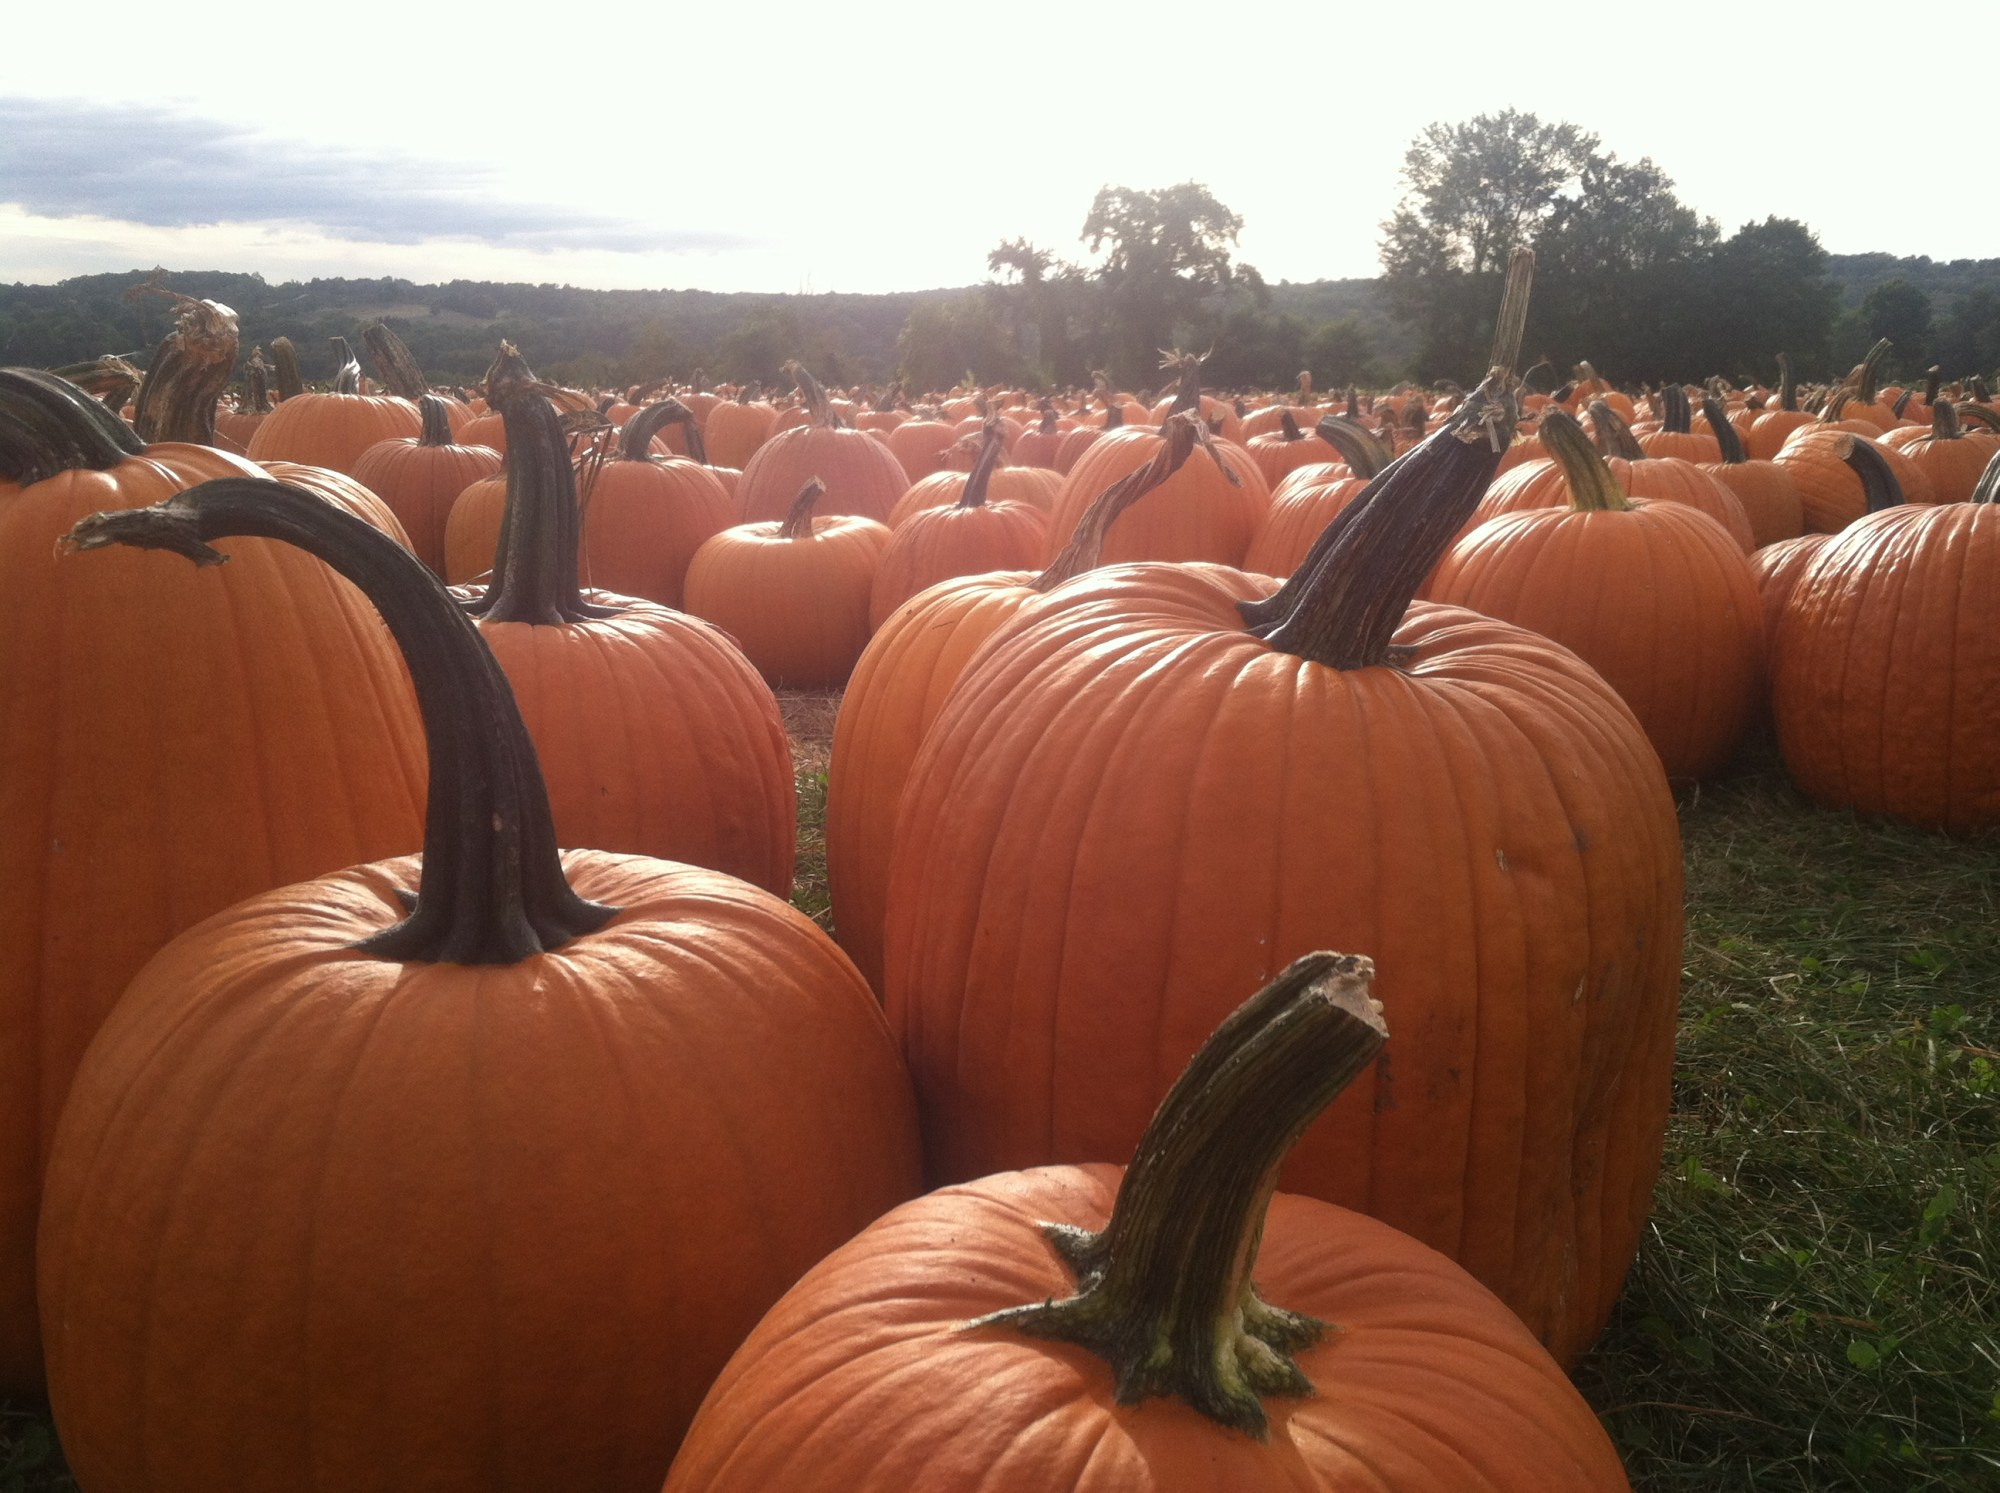 pumpkins at jones farm in shelton by josh scheinblum_174519